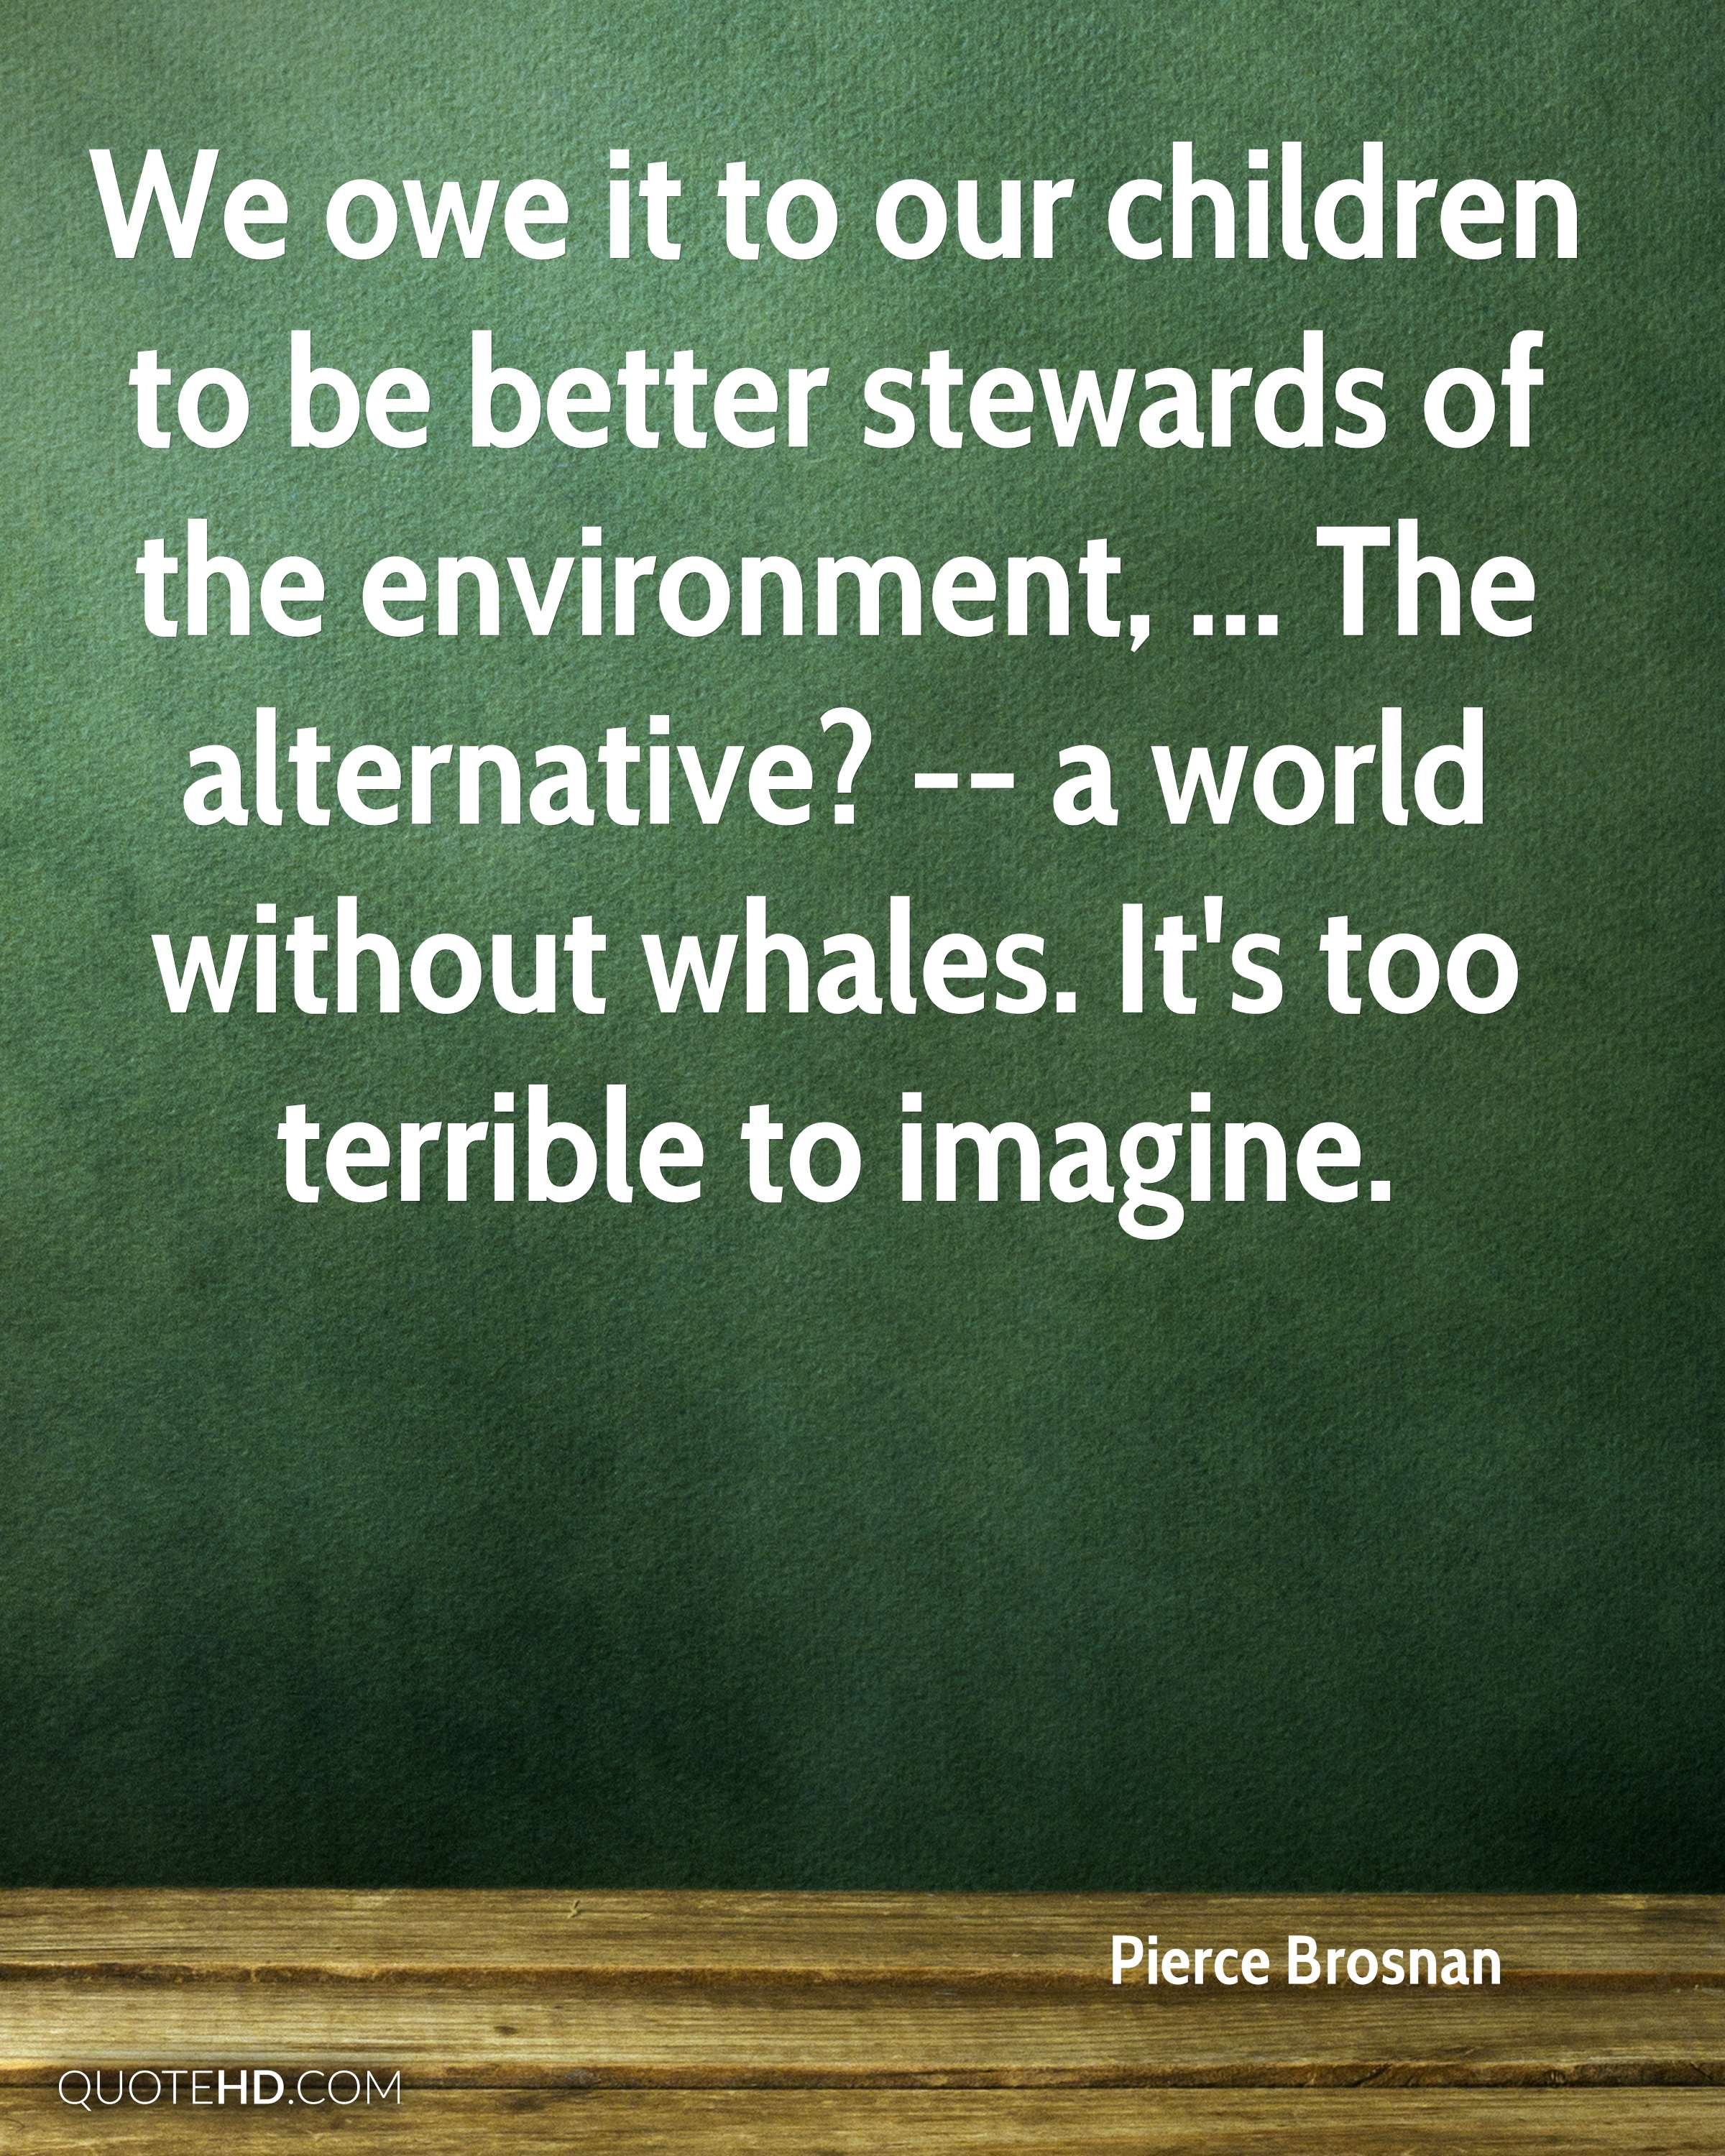 We owe it to our children to be better stewards of the environment, ... The alternative? -- a world without whales. It's too terrible to imagine.